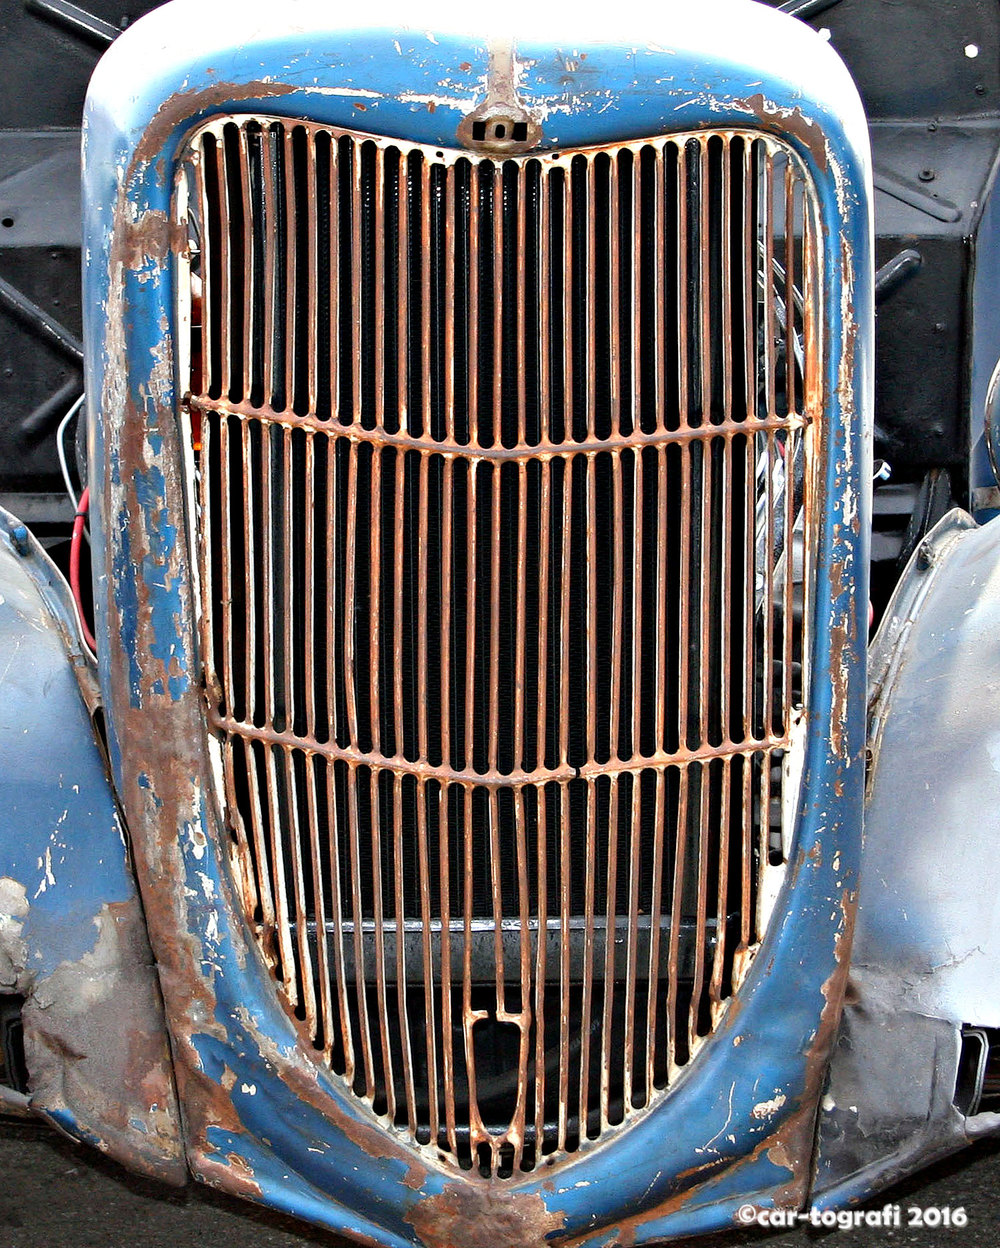 rusted-in-blue-car-tografi.jpg